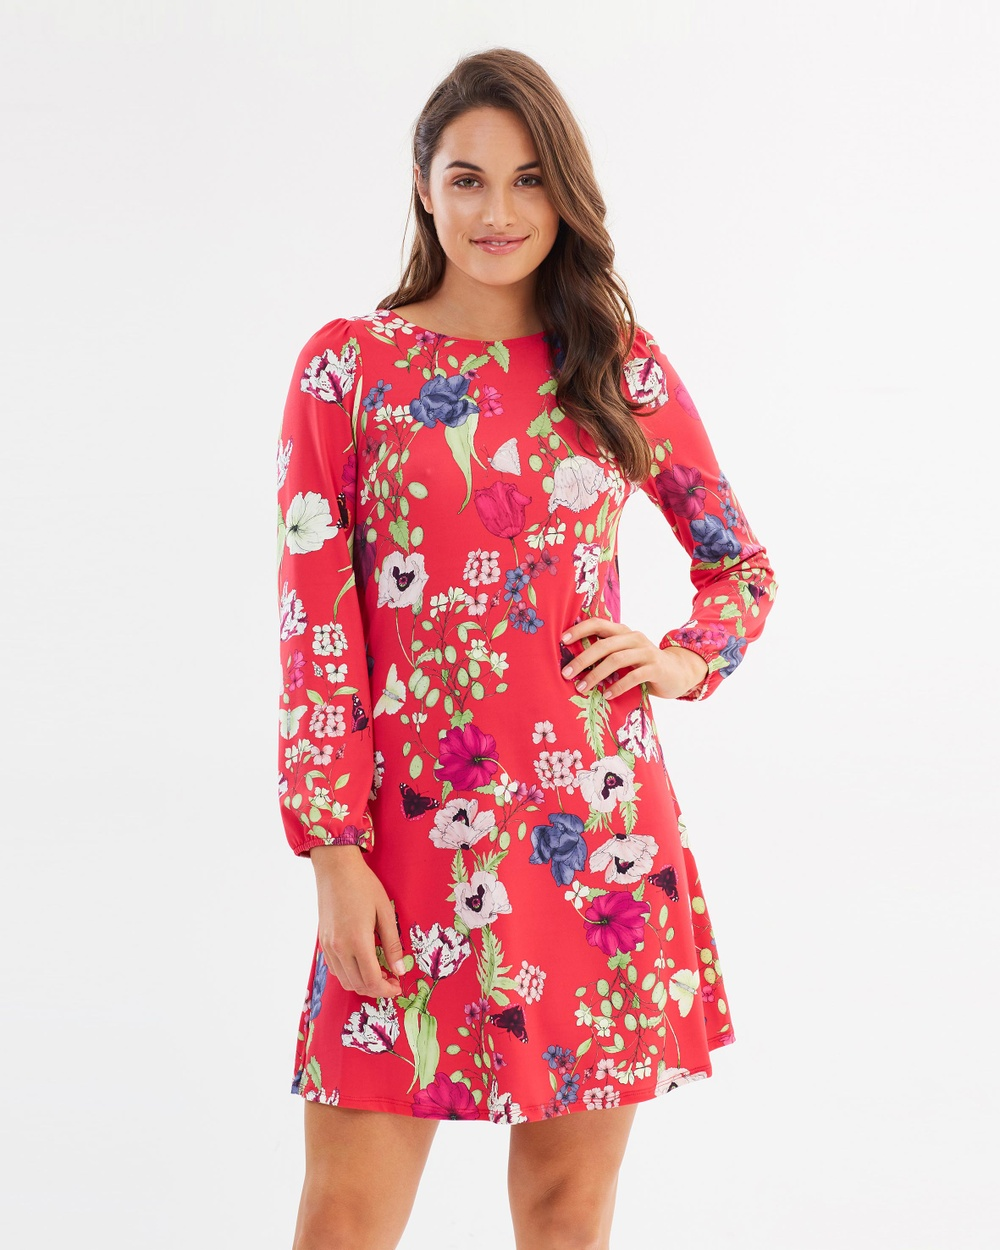 Wallis Petal Oriental Swing Dress Printed Dresses Pink Petal Oriental Swing Dress